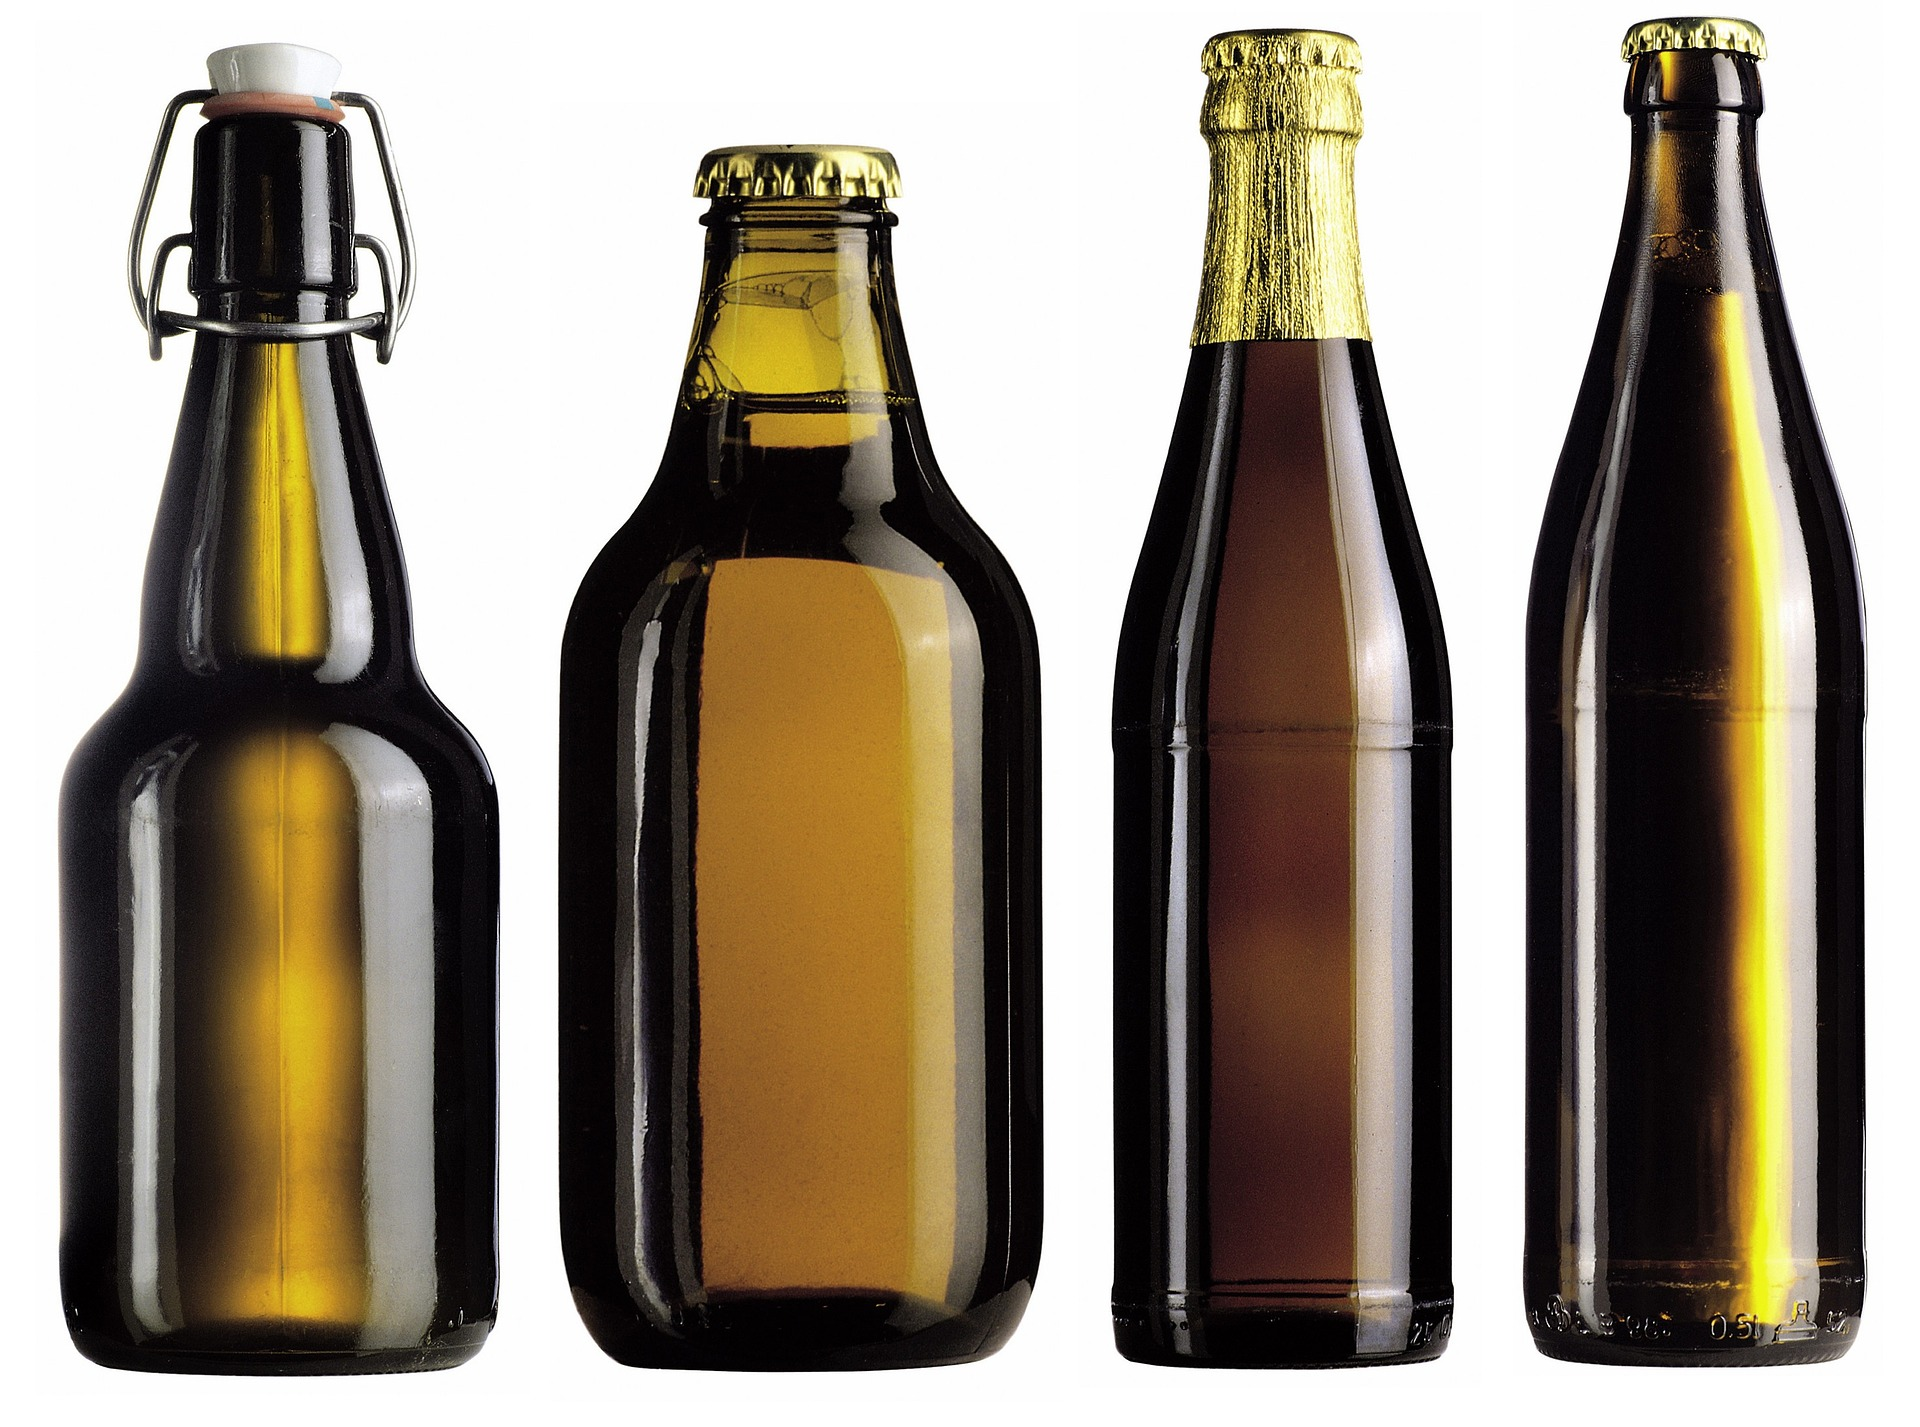 Select your favorite suds and celebrate National Beer Day!